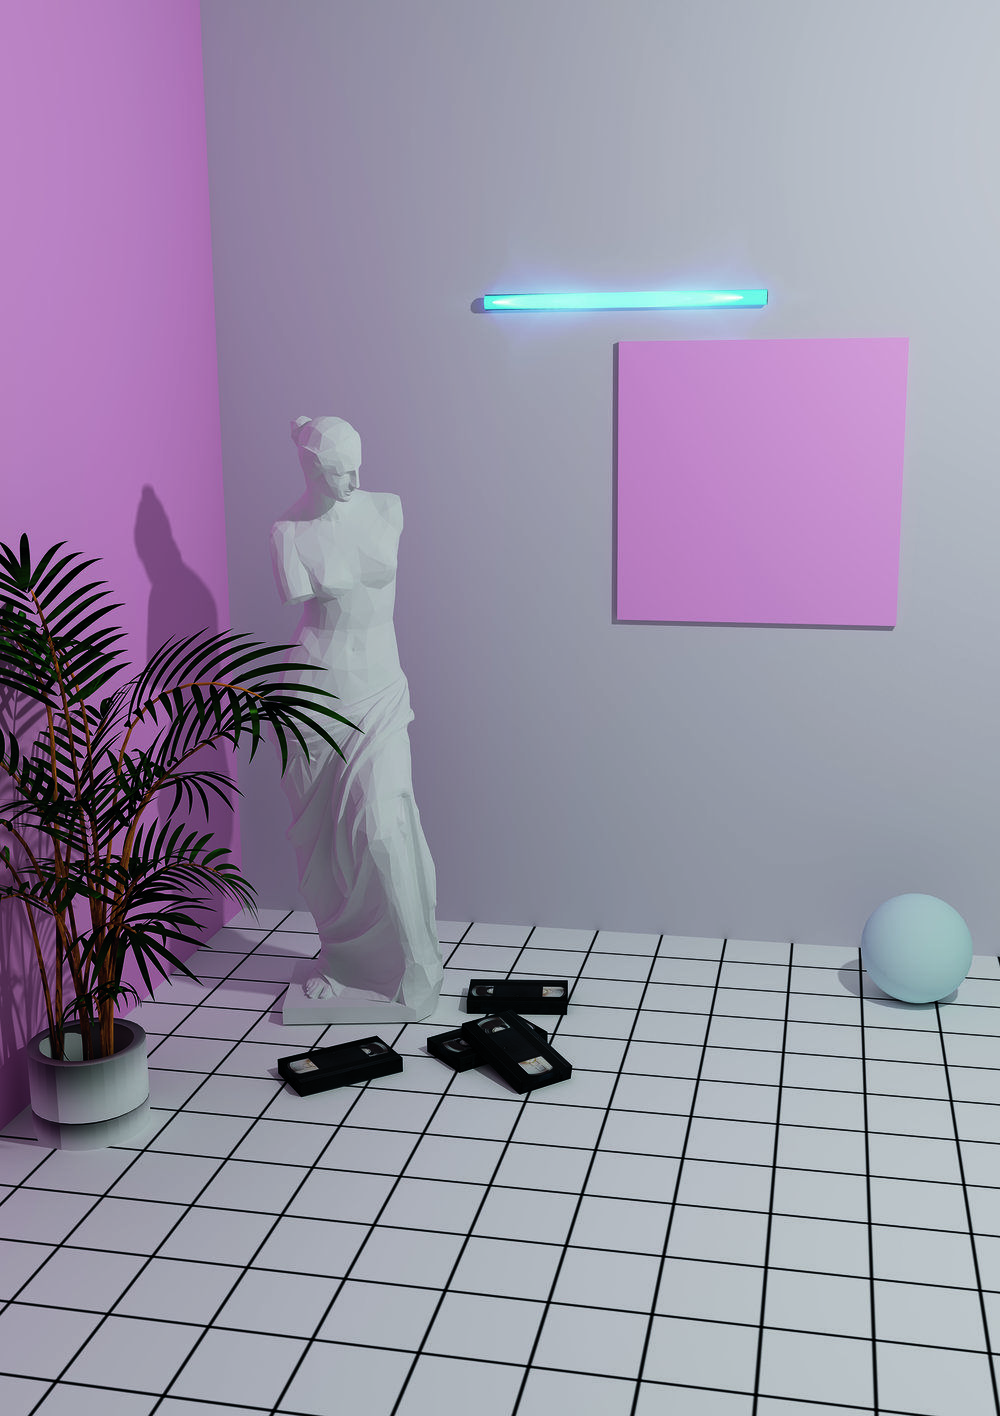 My 3d Room Design: Joshua Keeney Spills The Tea On His Alter Ego And Y2K